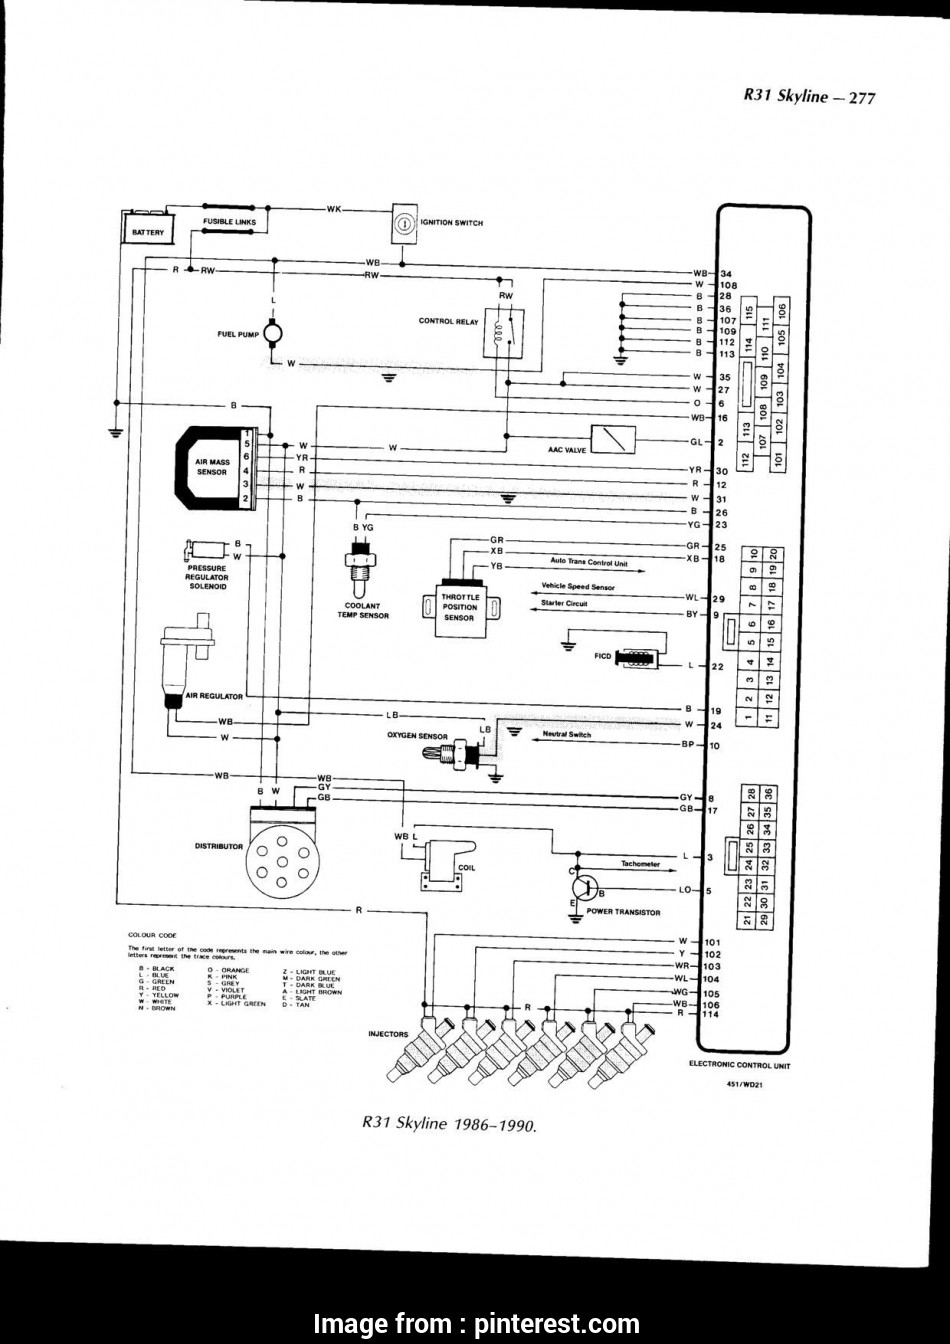 medium resolution of 110 electrical wiring diagram nissan 1400 electrical wiring diagram nissan pinterest 110 electrical wiring